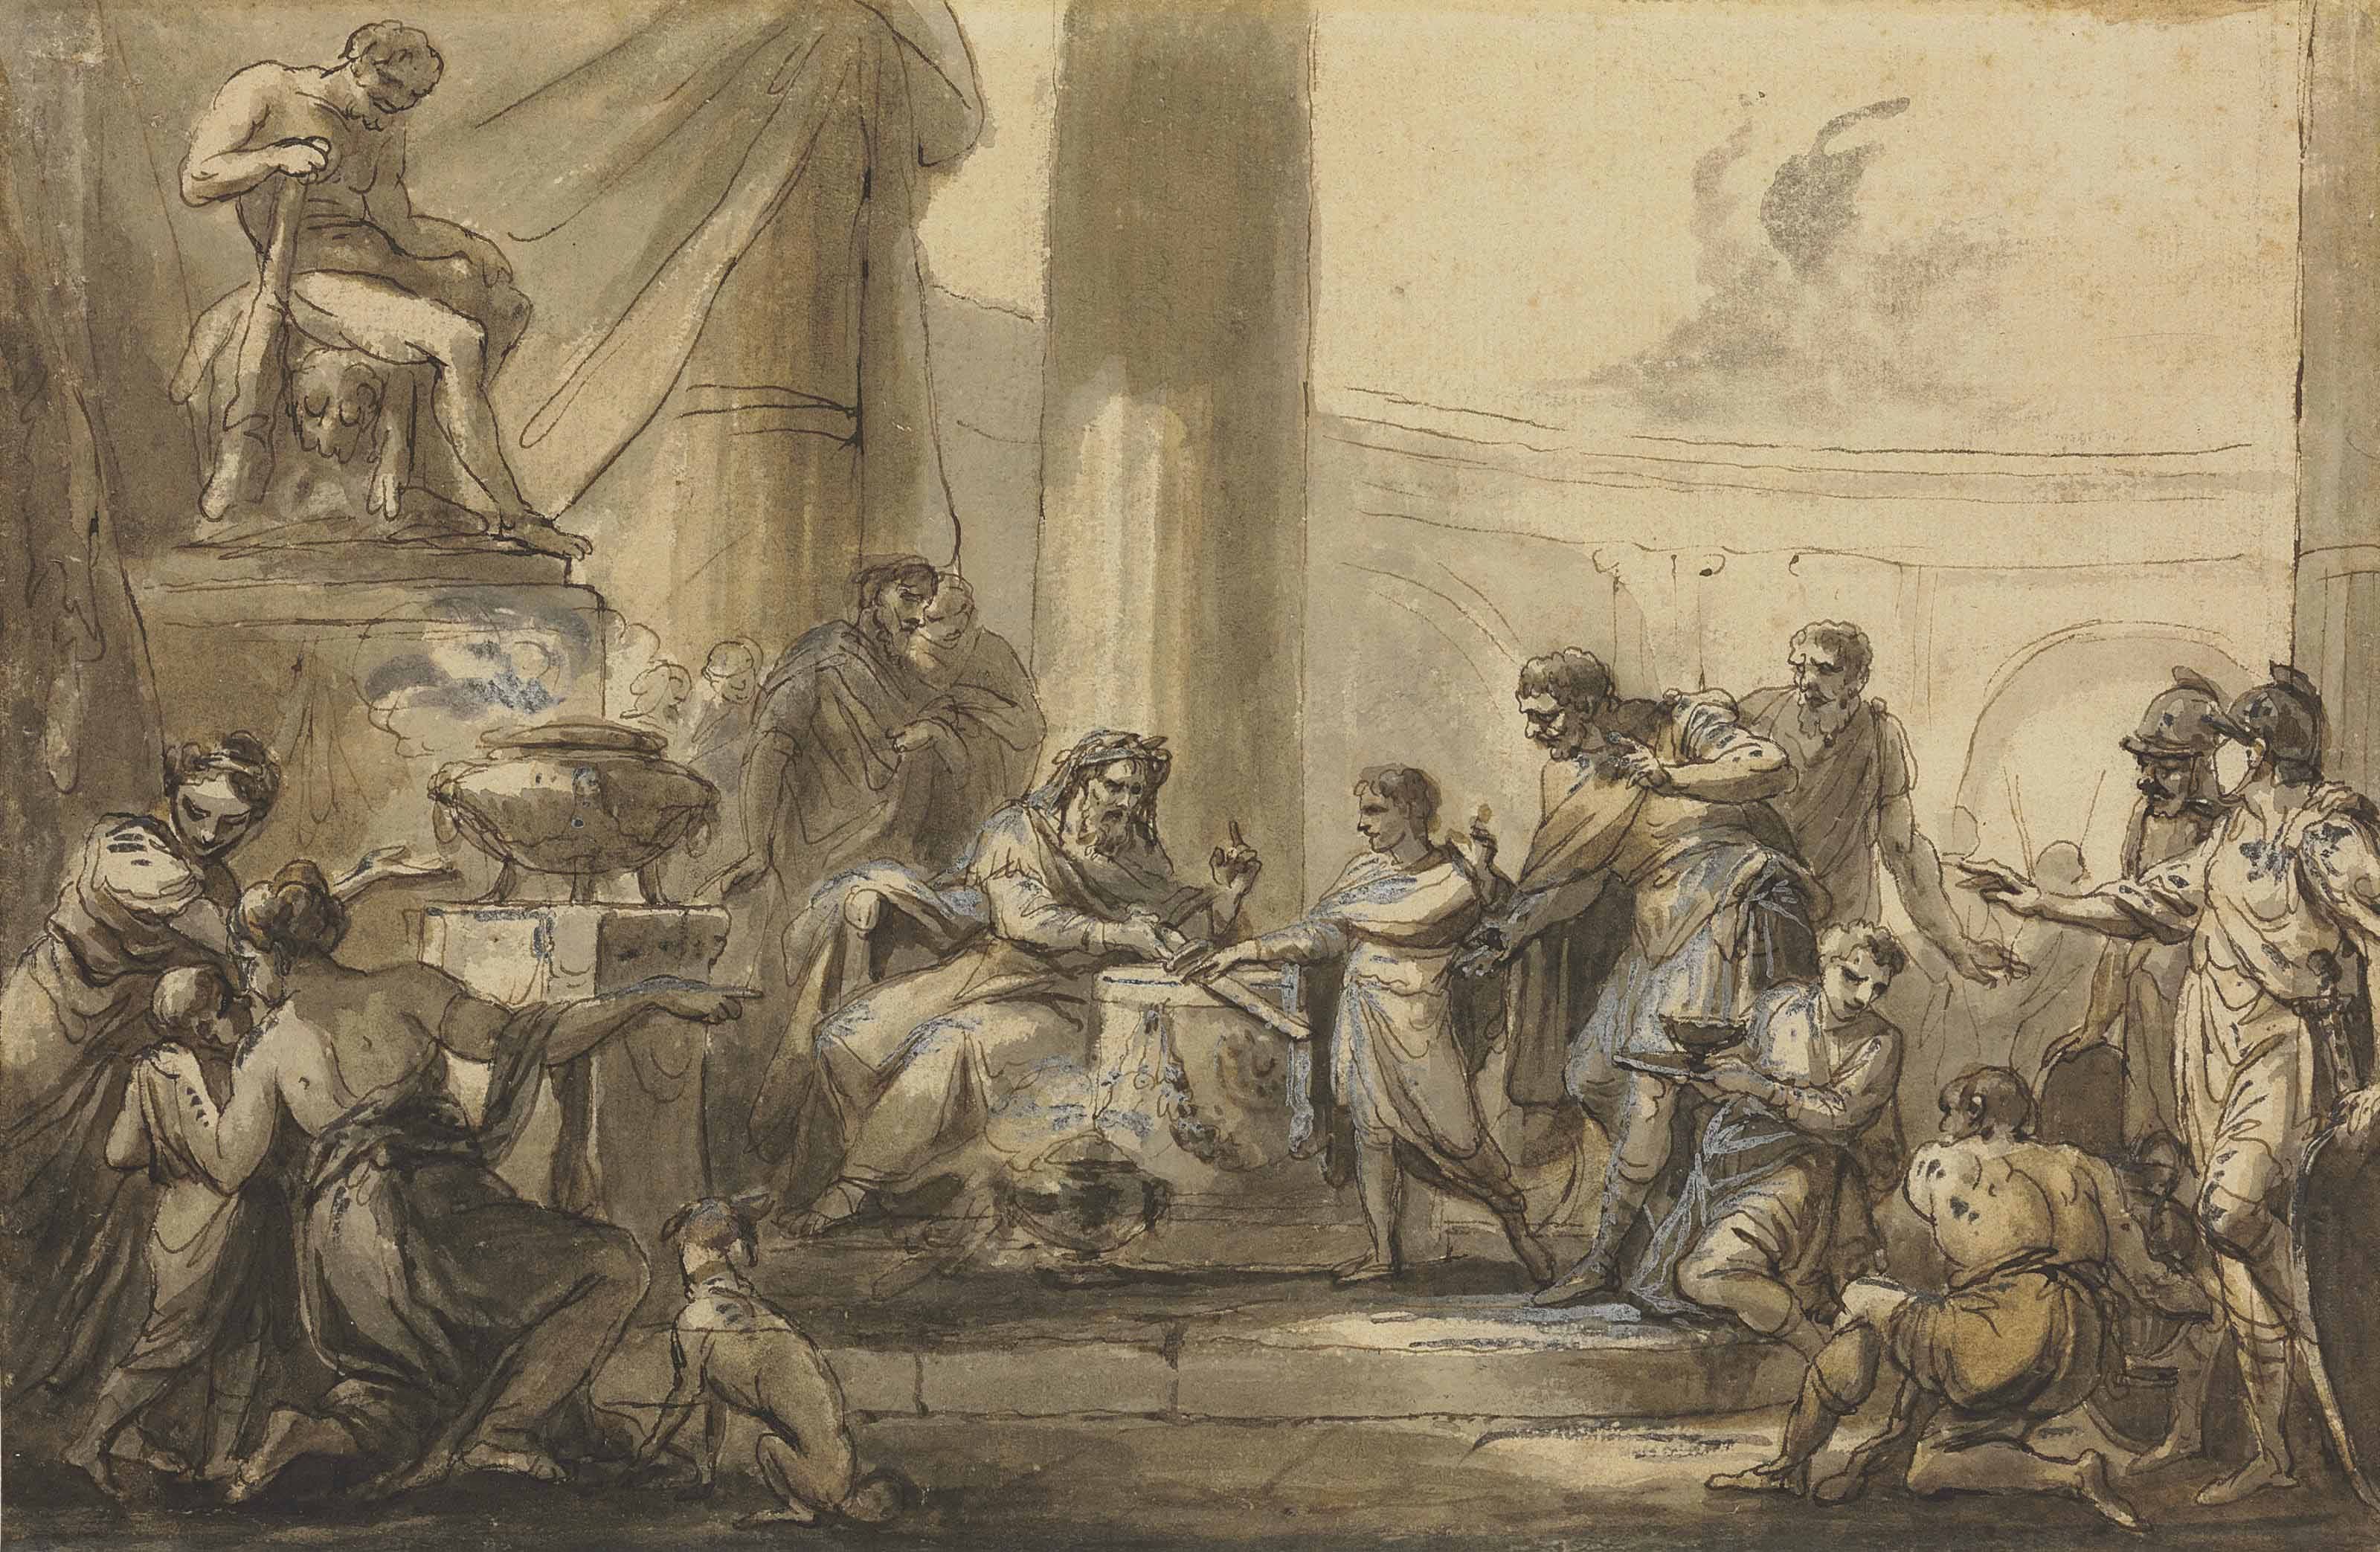 A scene from the Antique: A priest presenting a sword to a youth beneath a statue of Hercules